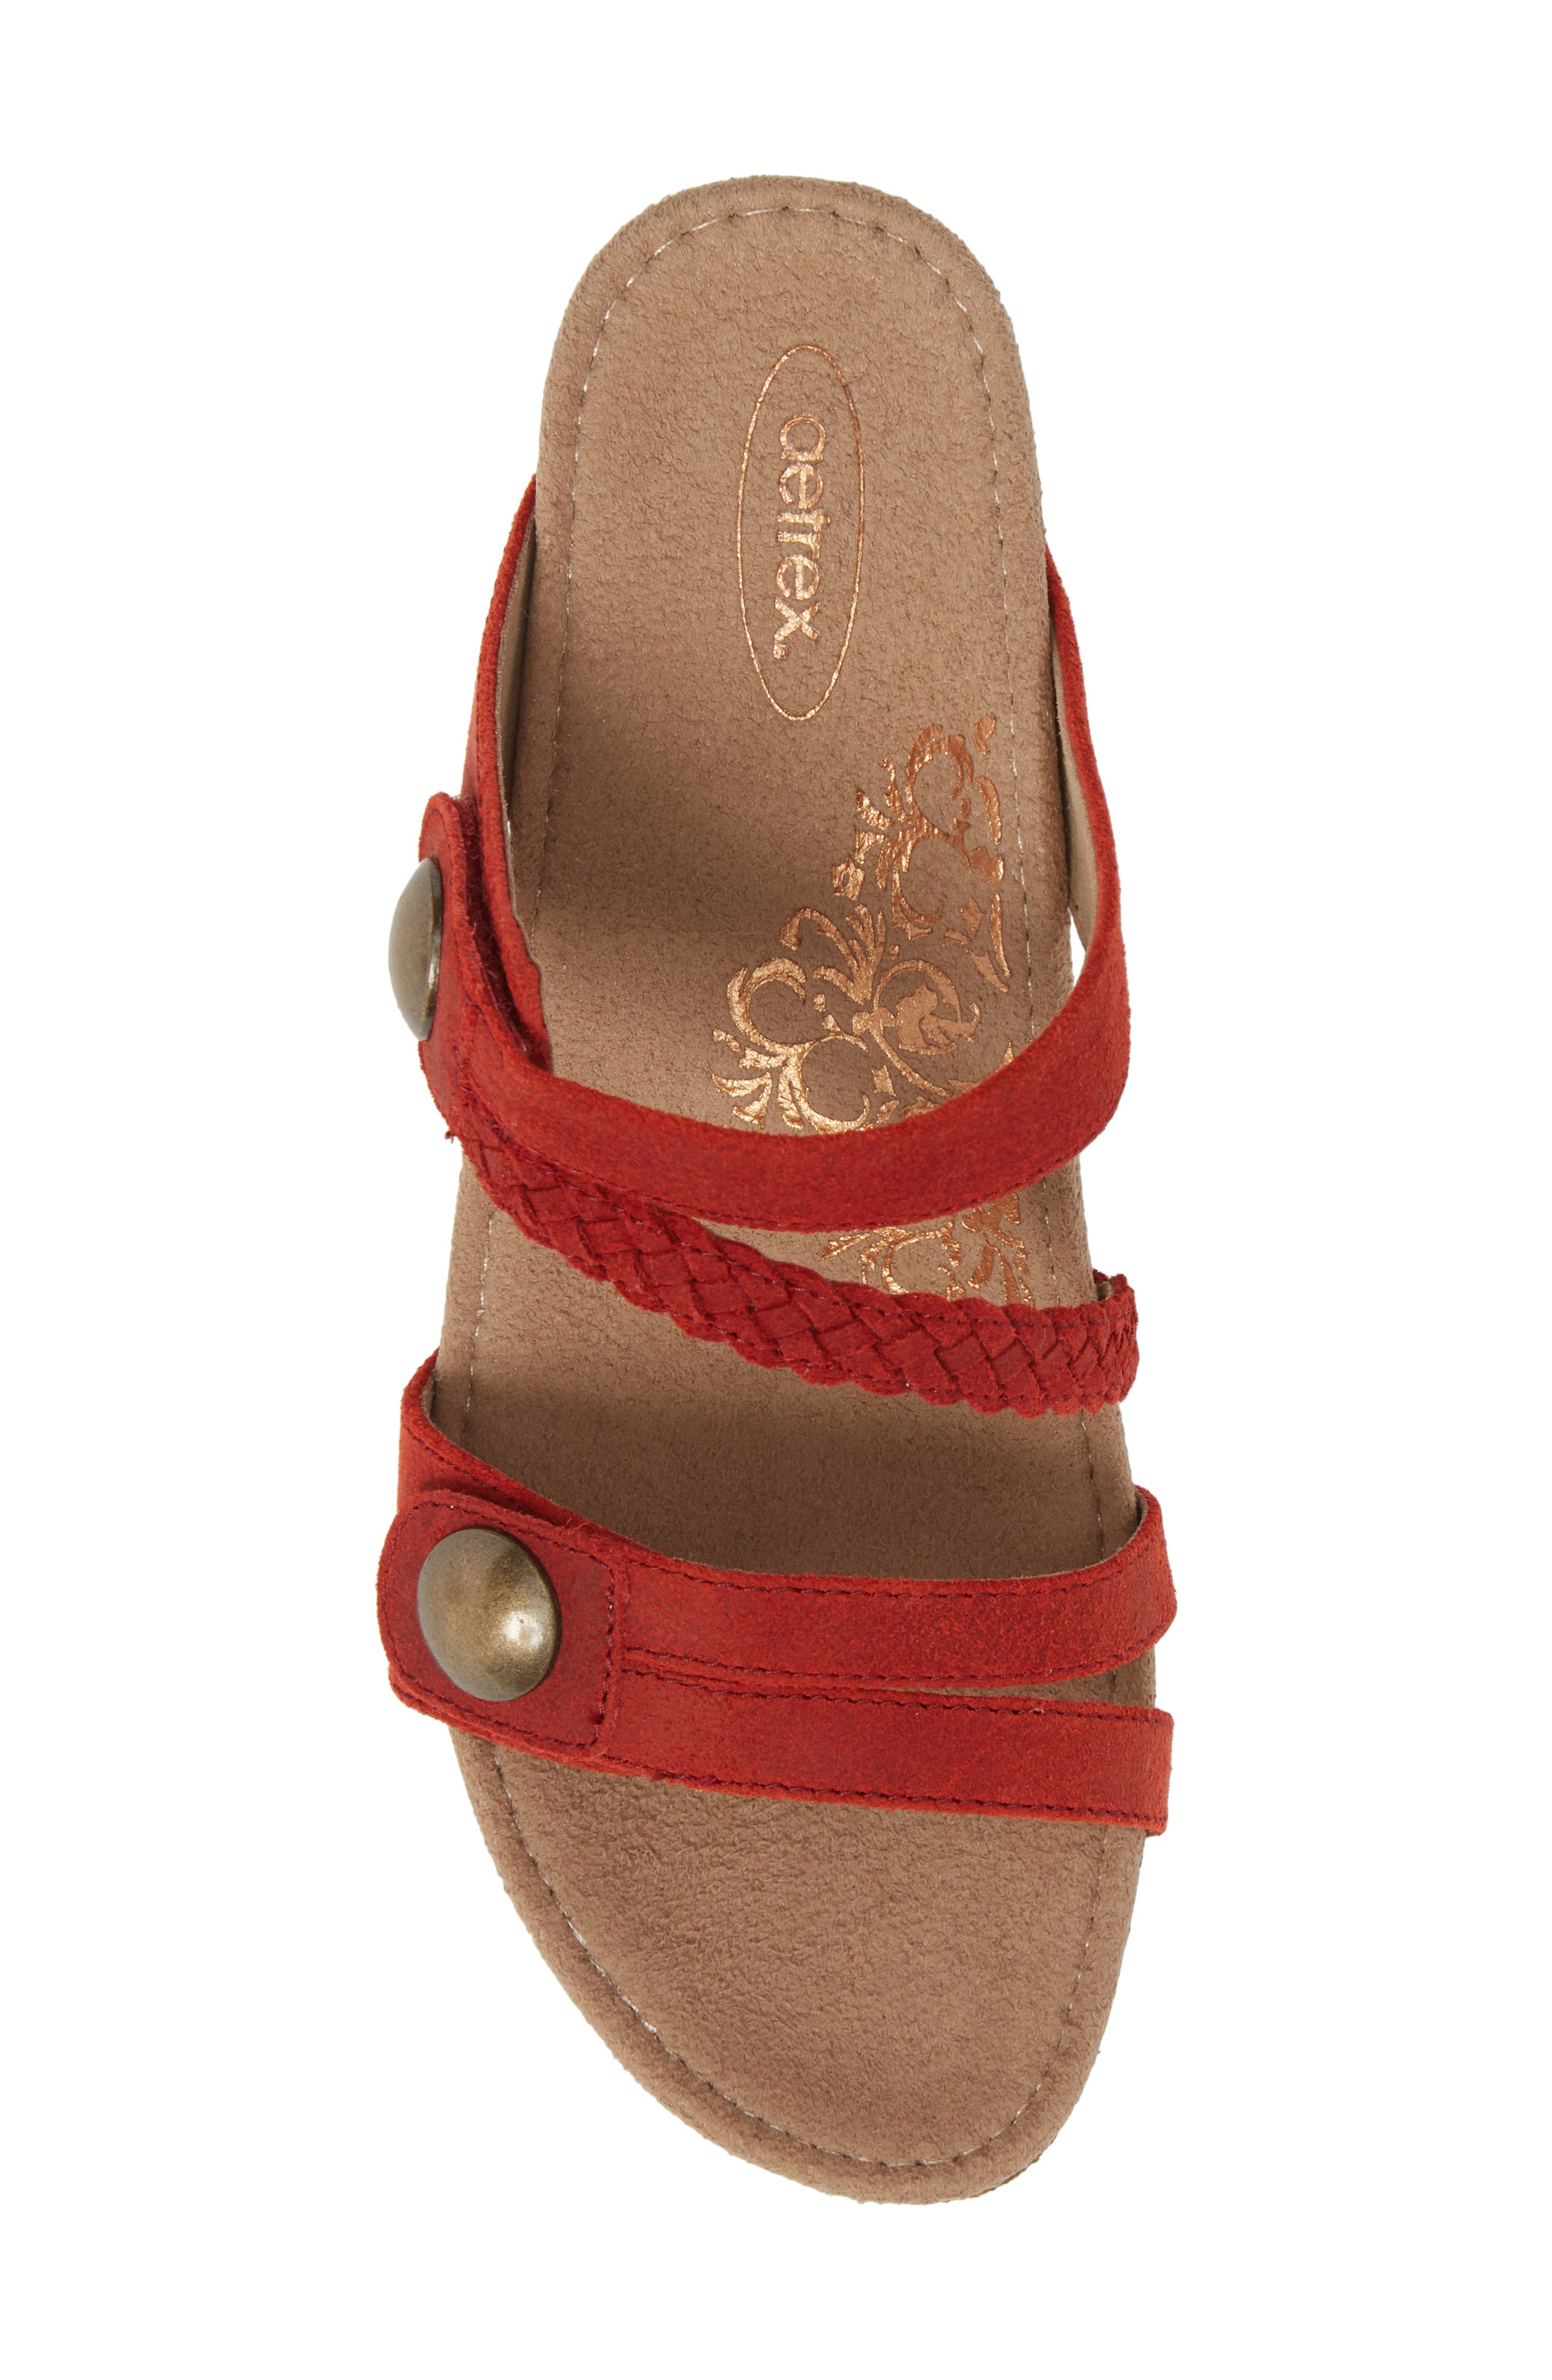 Lydia Strappy Wedge Sandal,                             Alternate thumbnail 5, color,                             Cayenne Leather